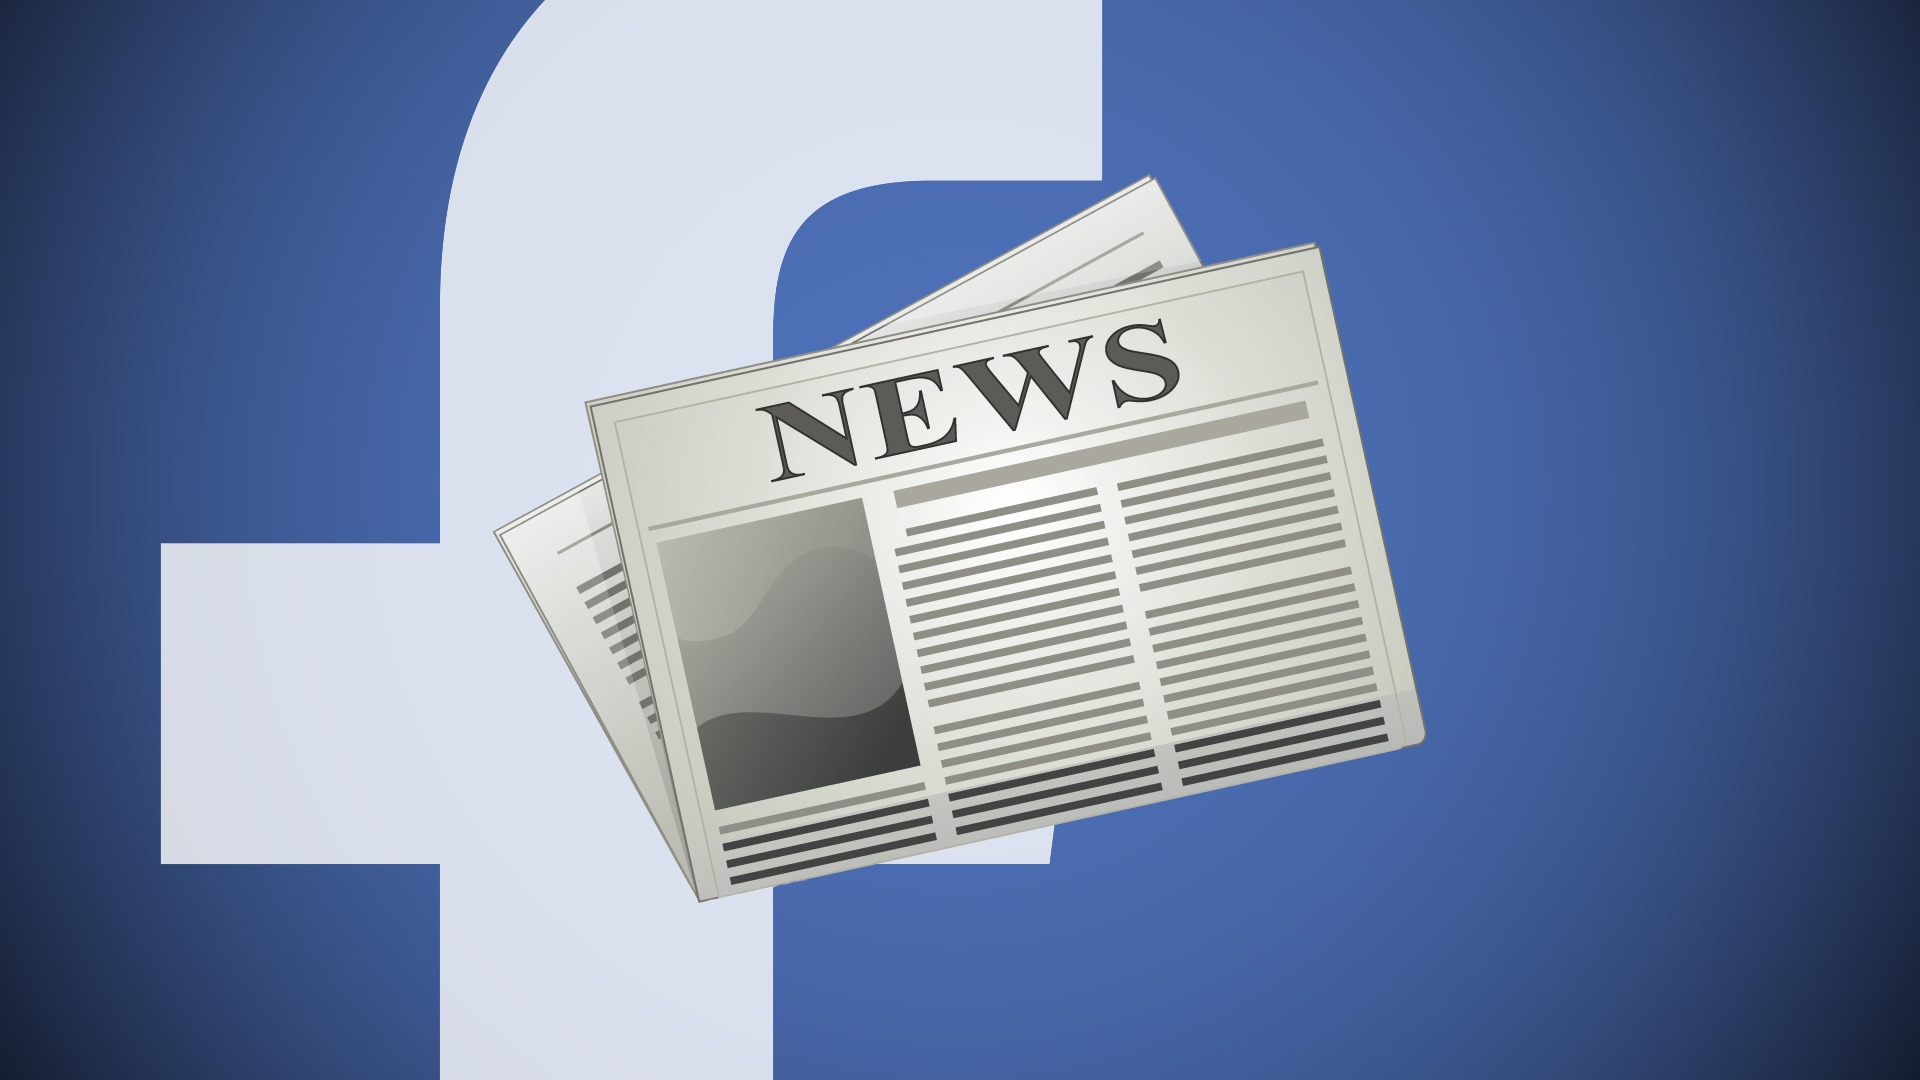 After recent News Feed changes, Facebook offers guidance for publishers